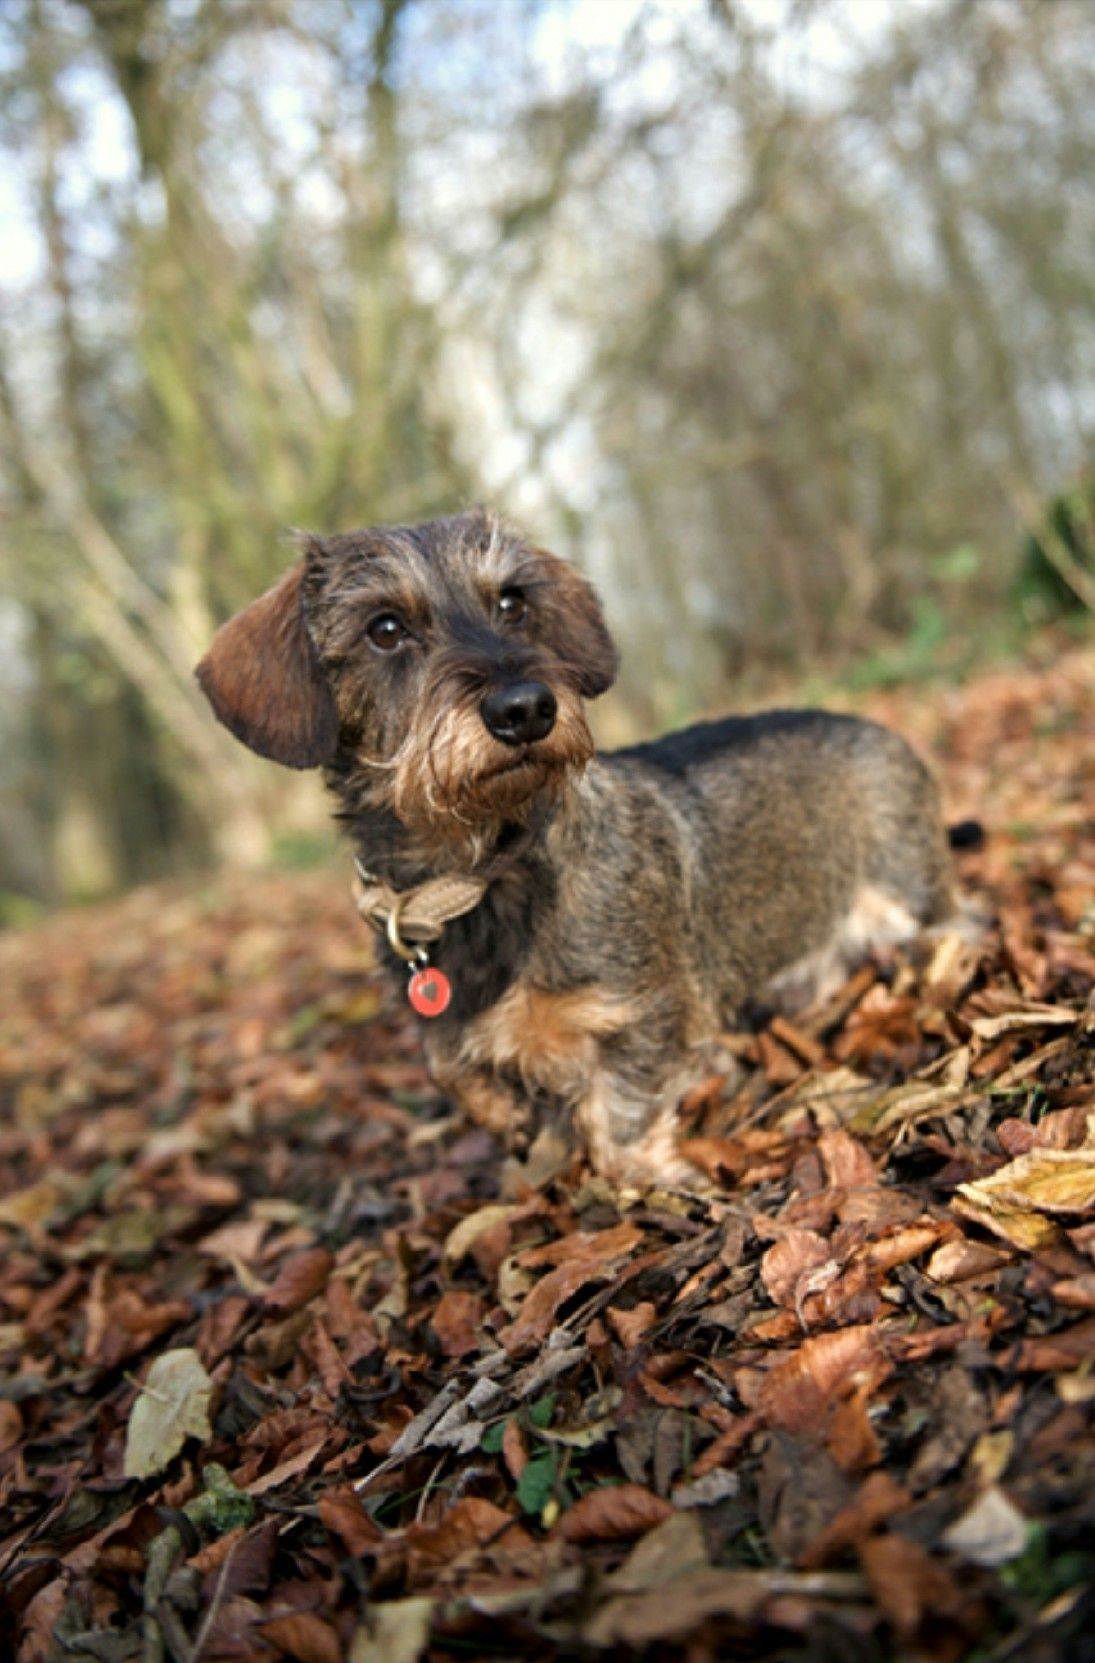 Dachshund Wirehaired A German Lady Once Told Me They Call This